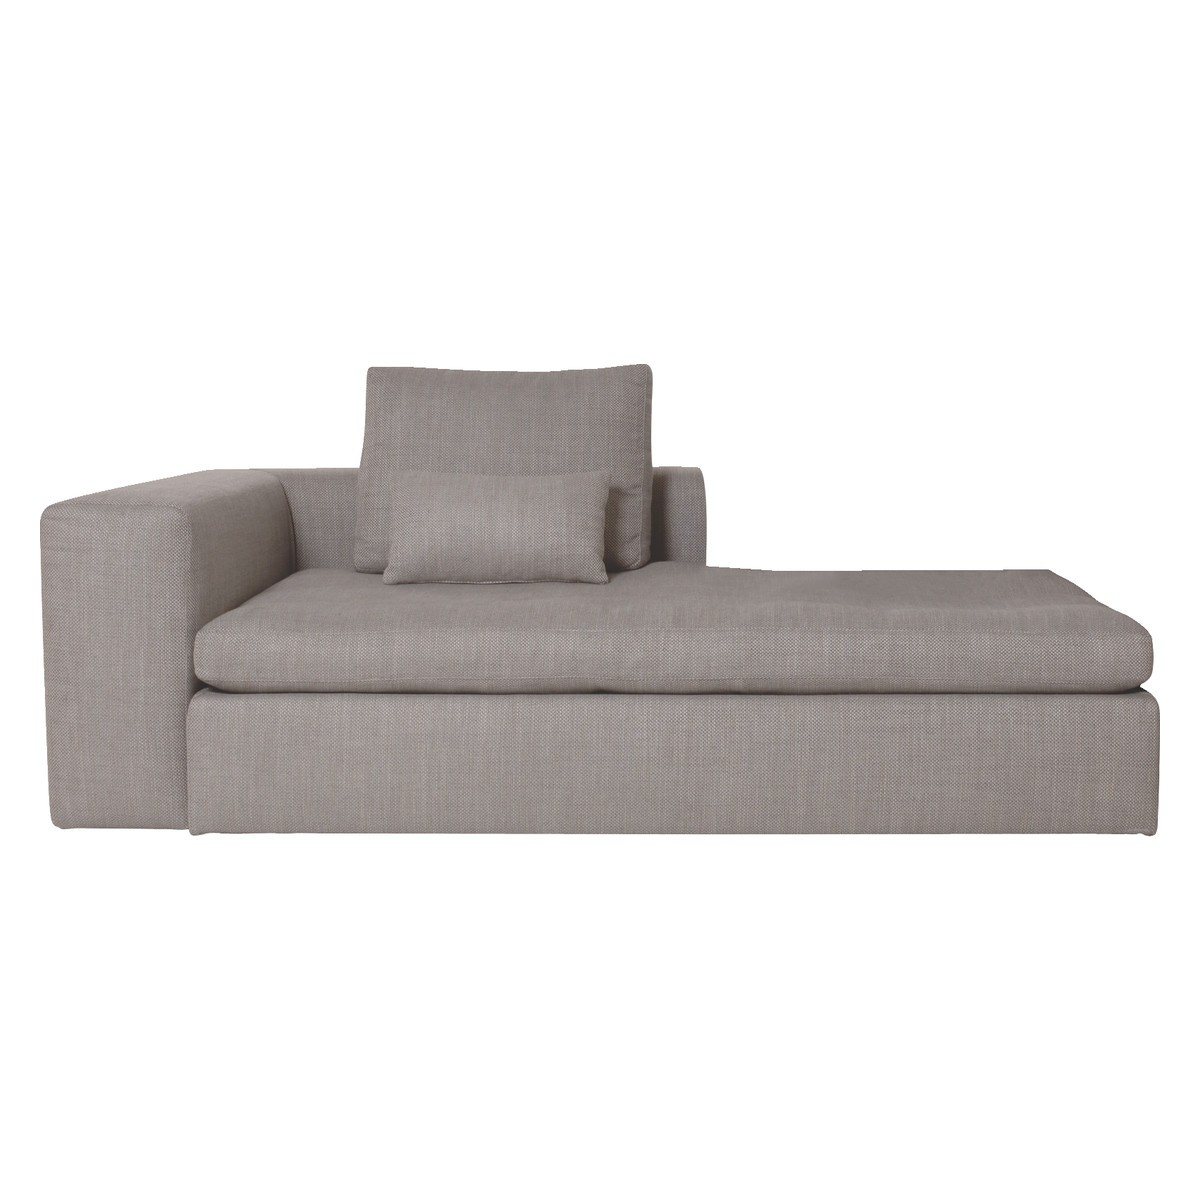 Inspirational Sofa Beds Uk 66 About Remodel Sofa Table Ideas with Sofa Beds Uk